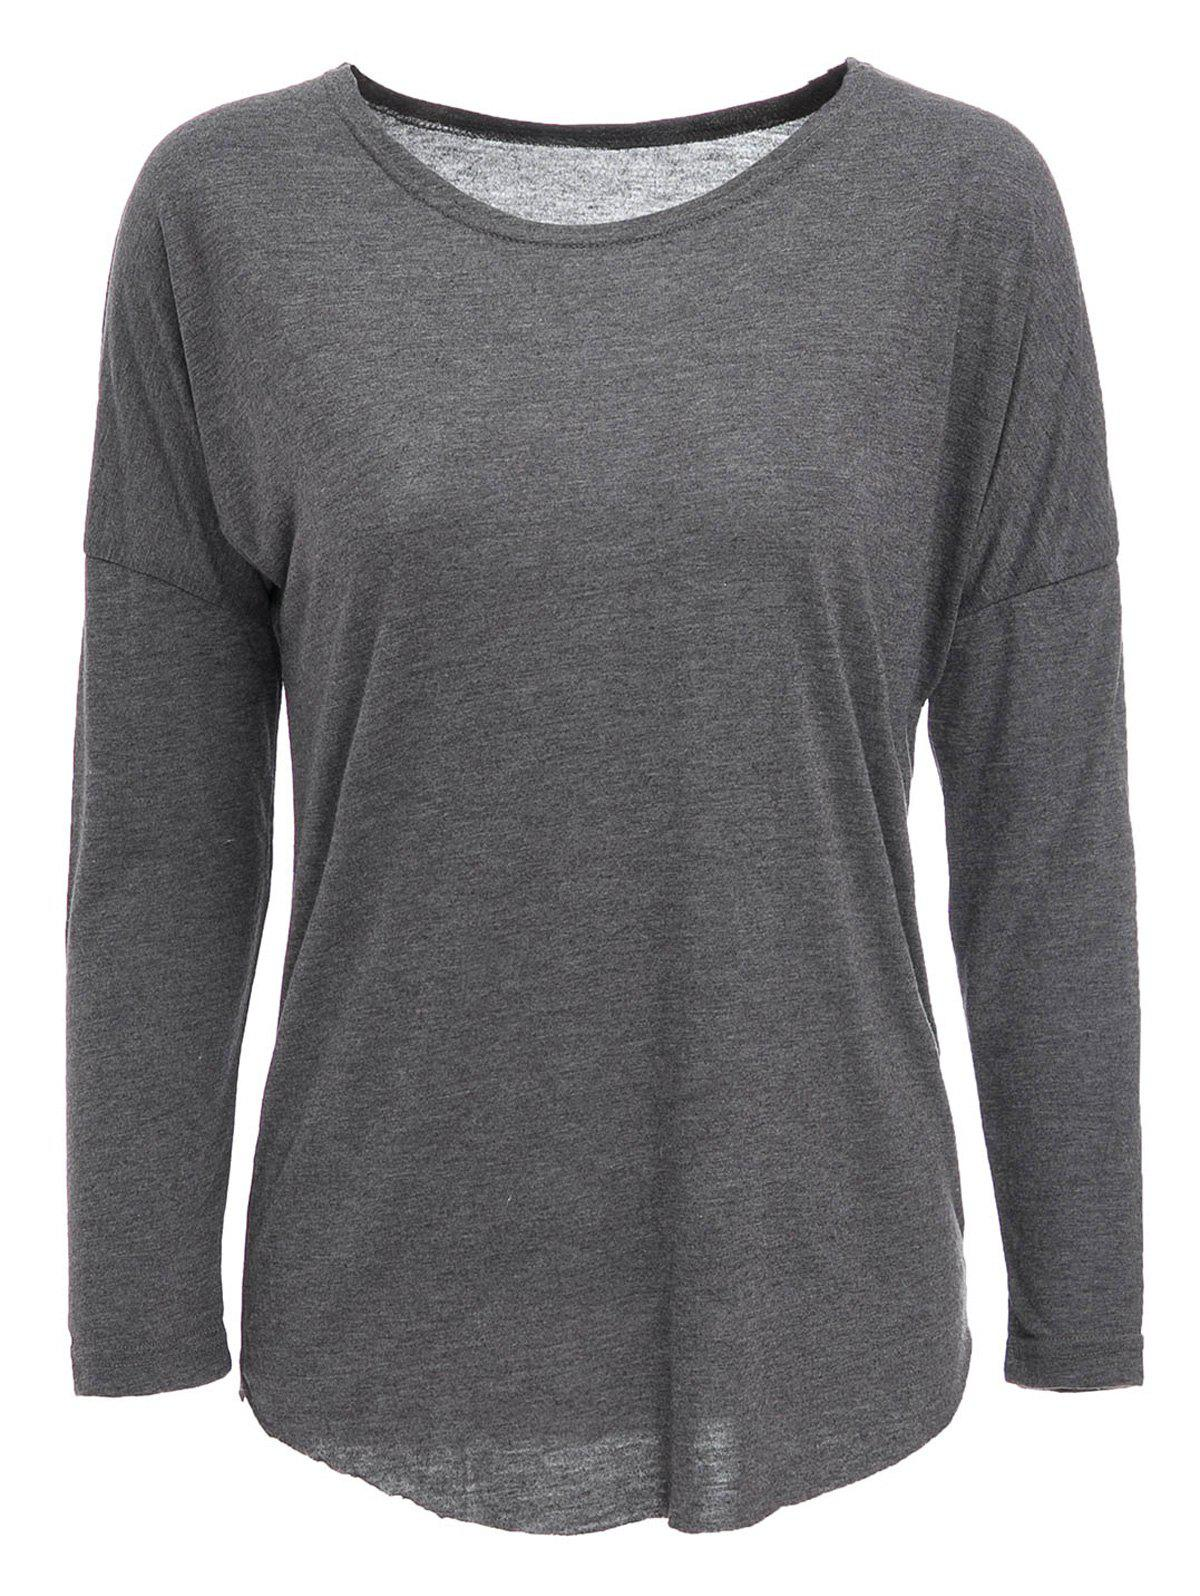 Chic Casual Gray Long Sleeve Cotton Blend Pullover T-Shirt For Women